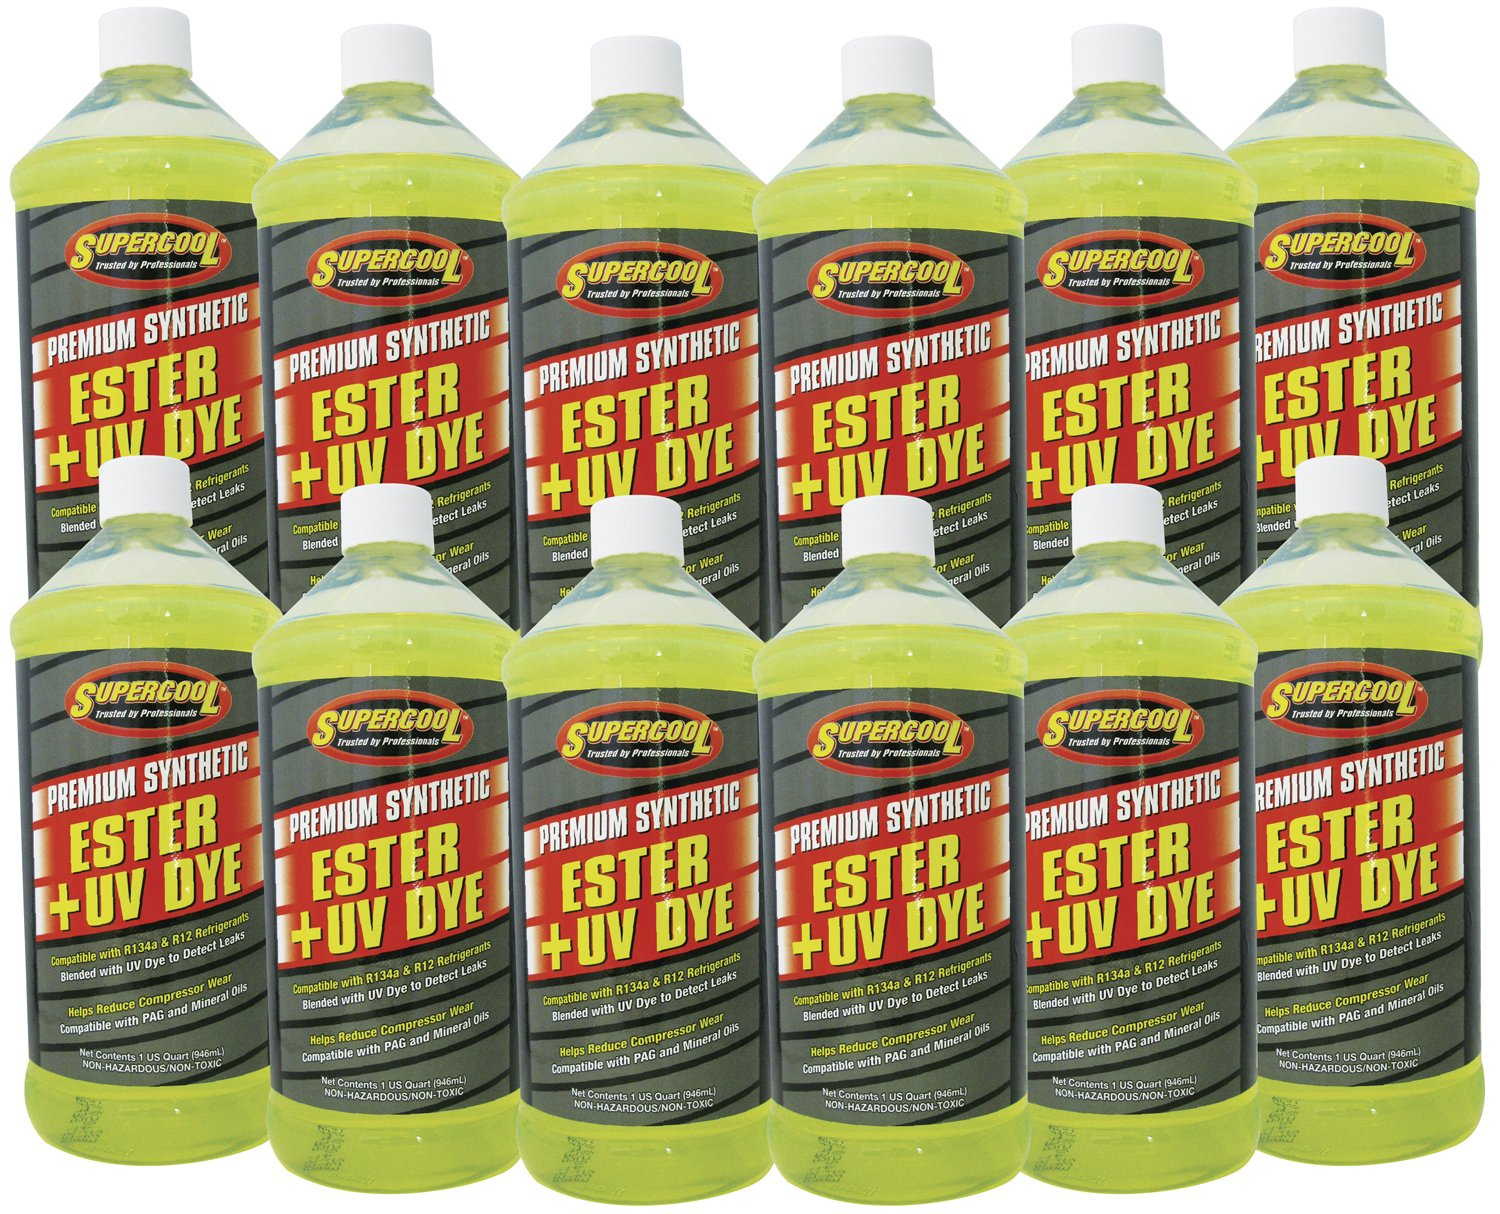 TSI Supercool E32-12CP Ester Oil Plus U/V Dye - 1 quart, 12 Pack by TSI Supercool